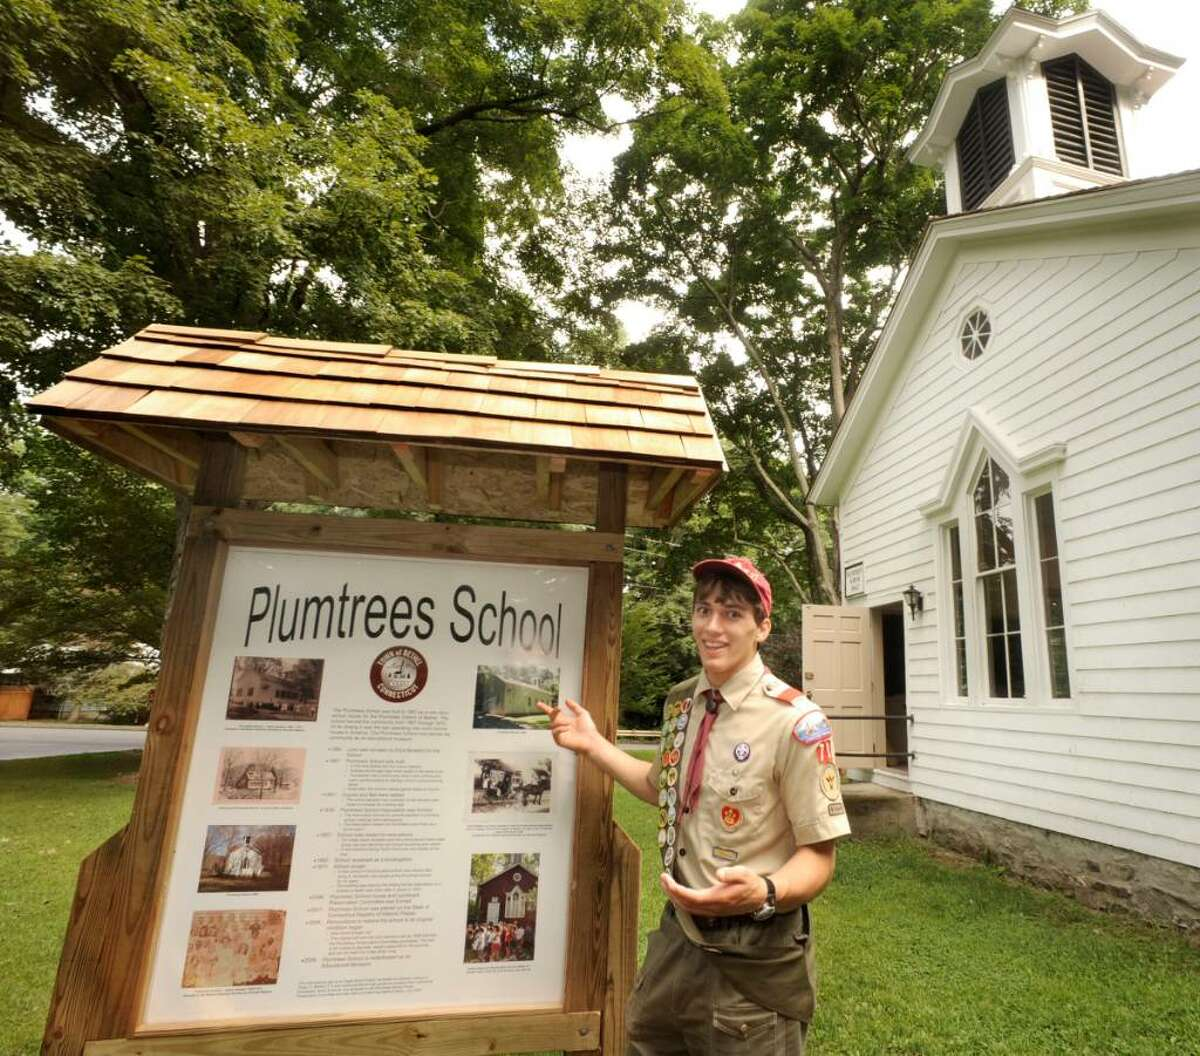 Life Scout Brandon Lennox talks about the Plumtrees School information sign he created for his eagle scout award,outside the Bethel school on monday.